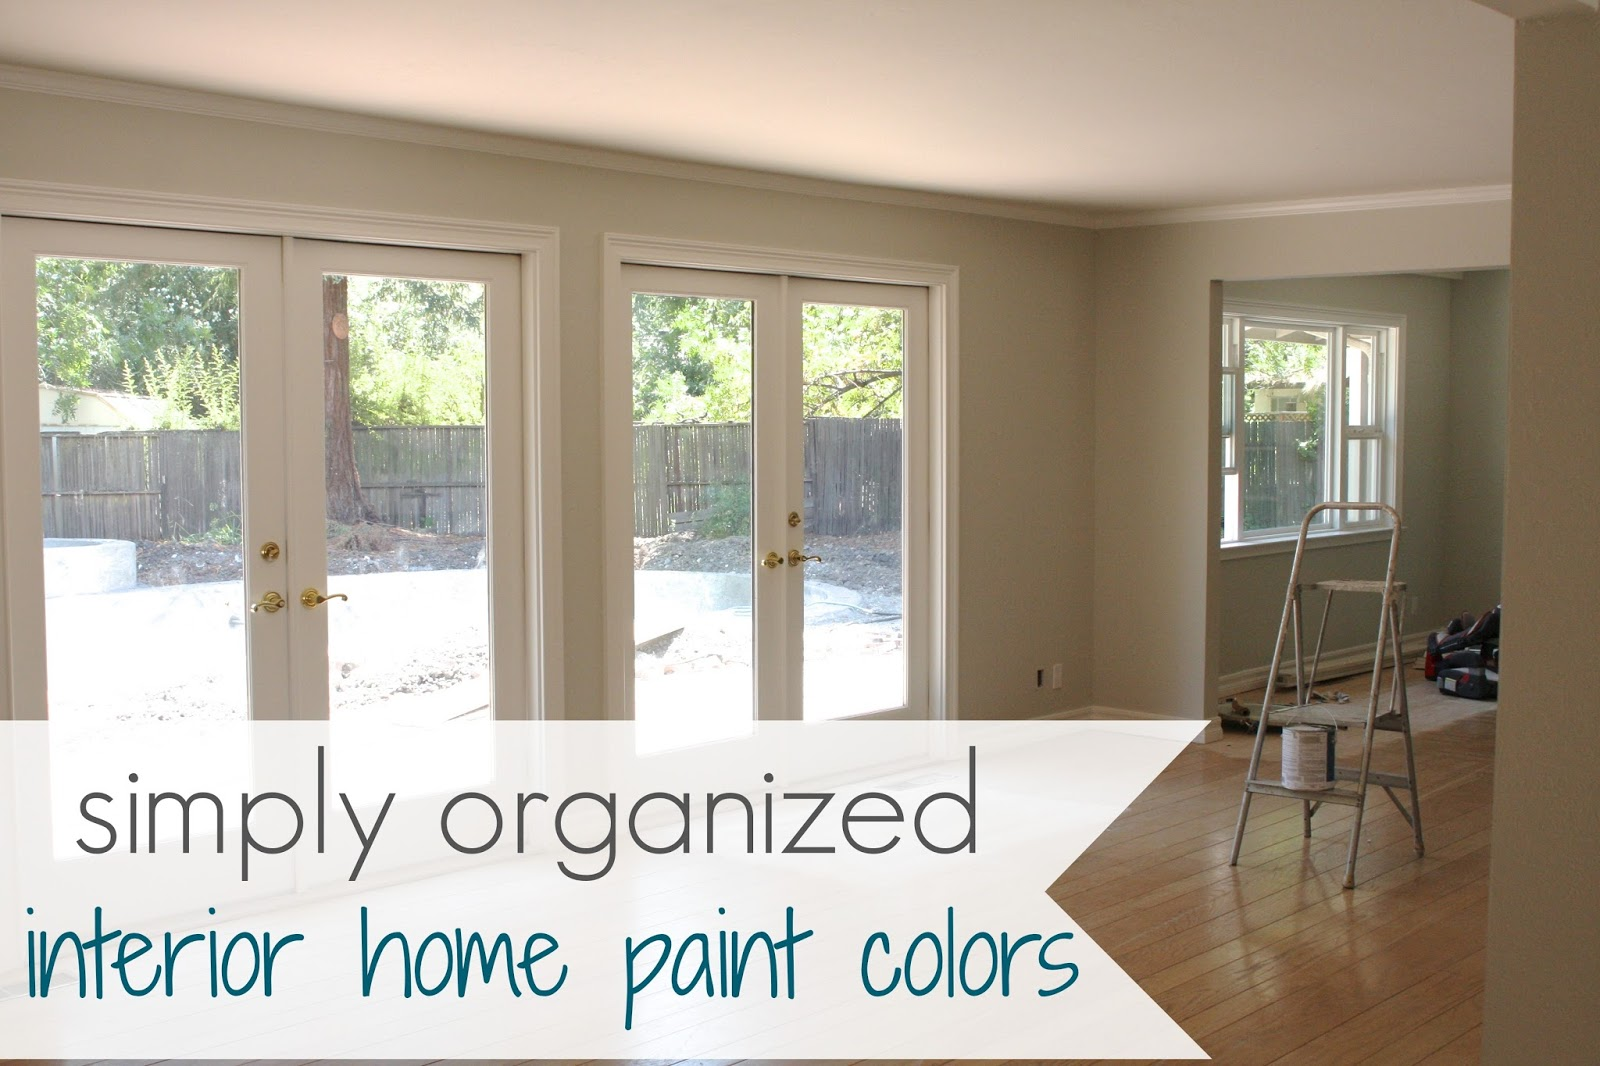 Simply organized my home interior paint color palate for Painting inside a house